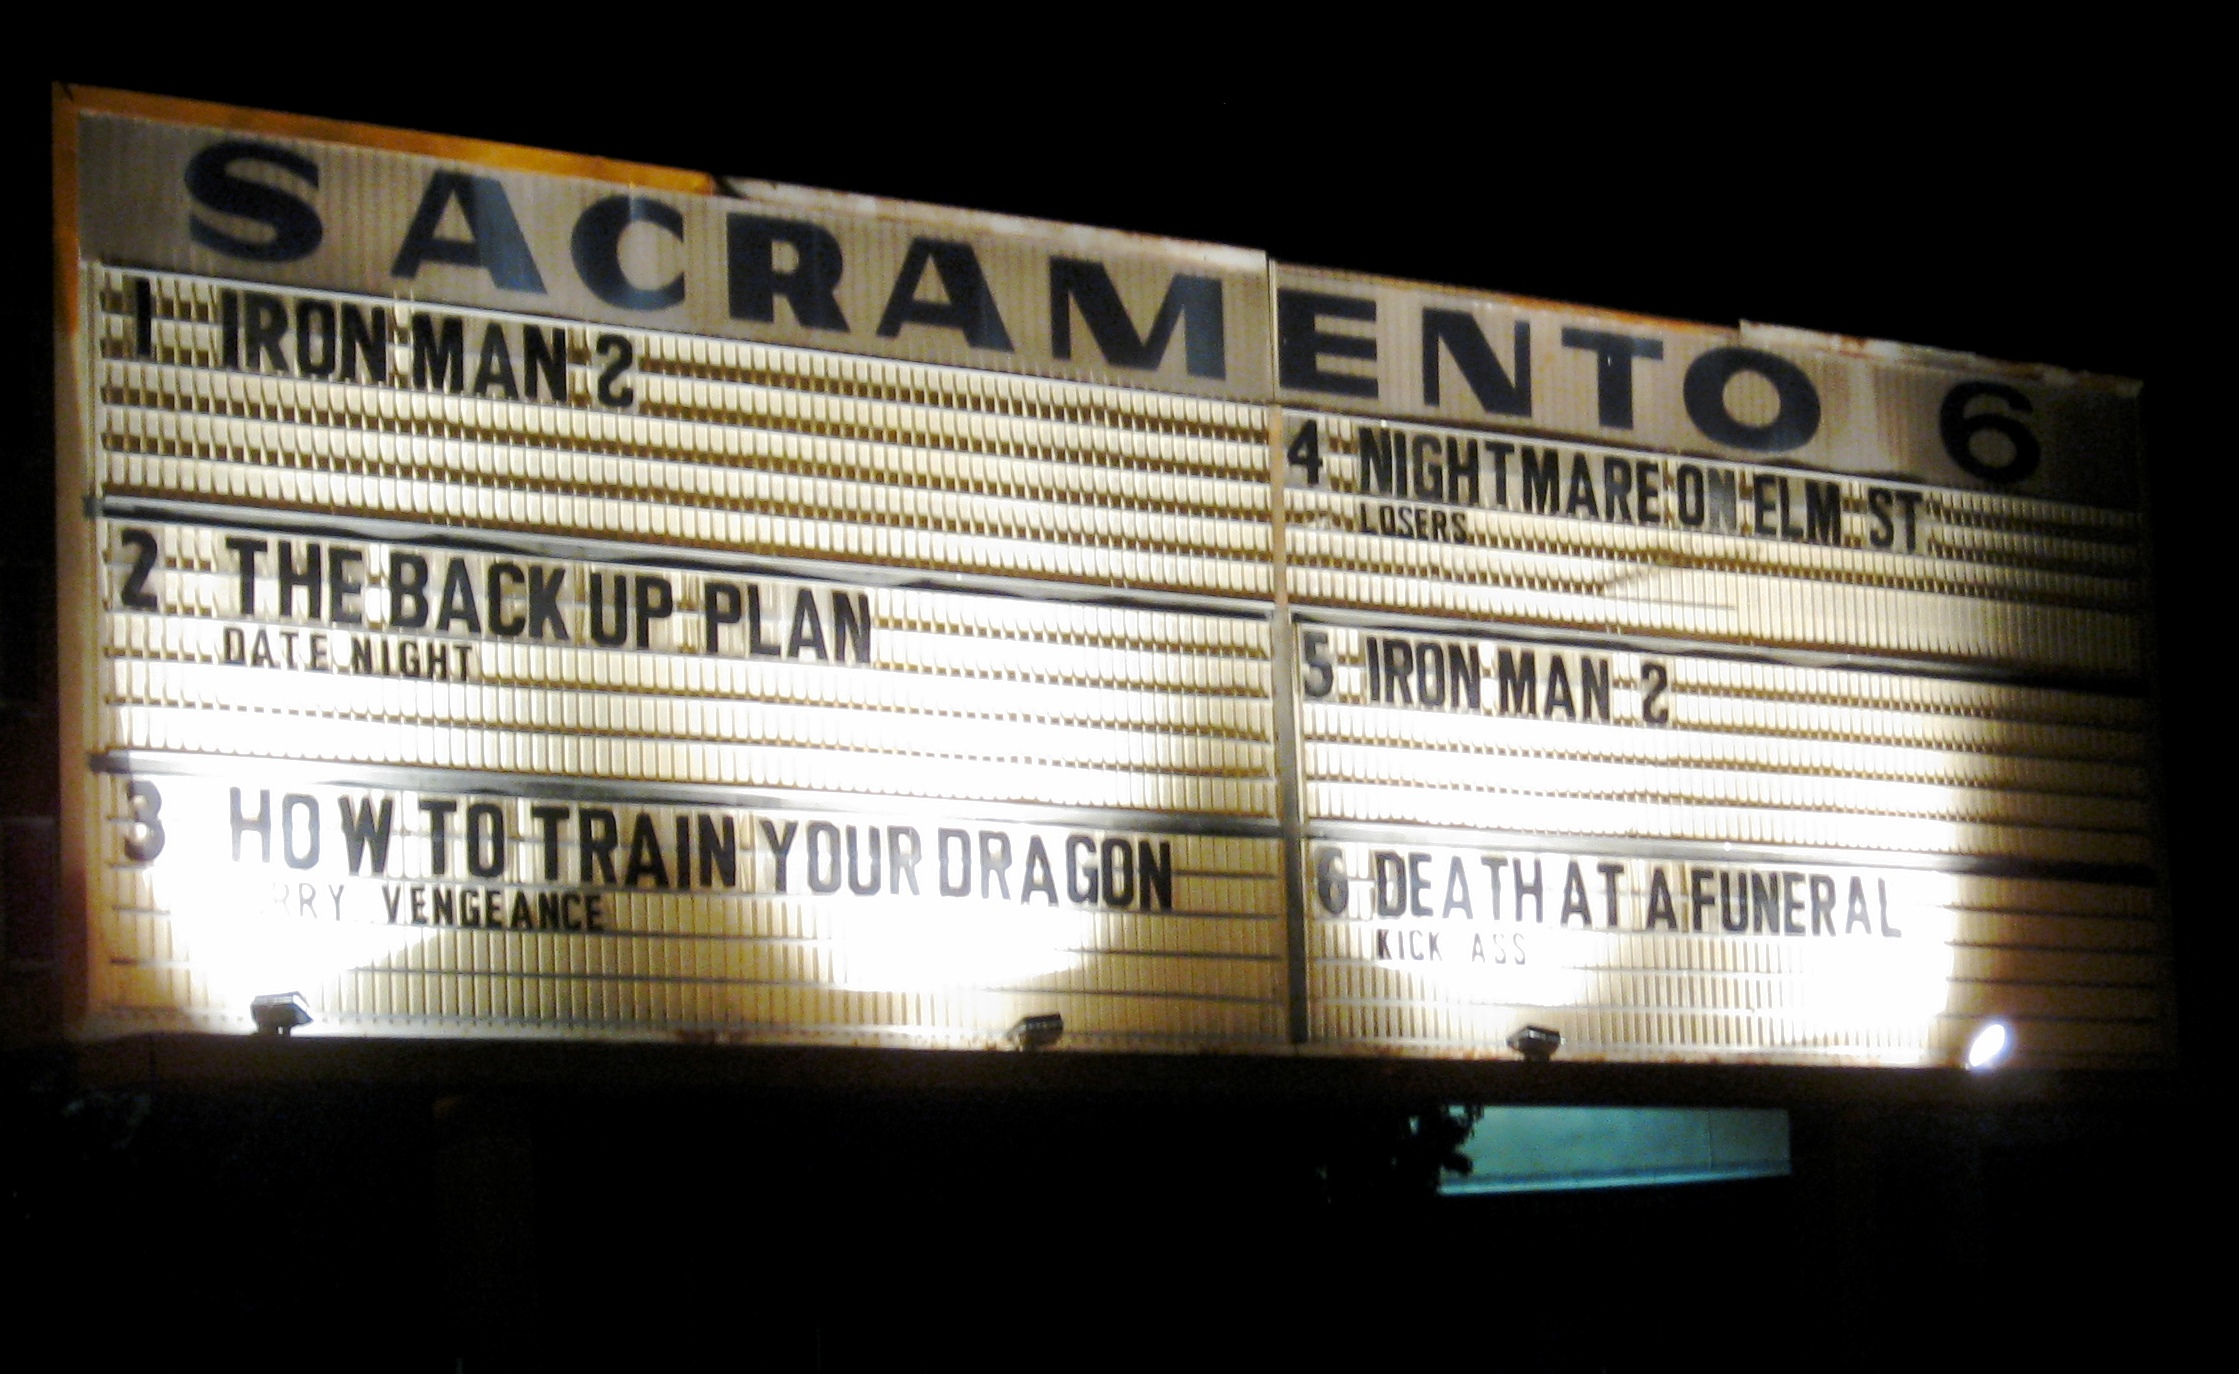 Summer Activities in Sacramento - Sacramento 6 Drive-In